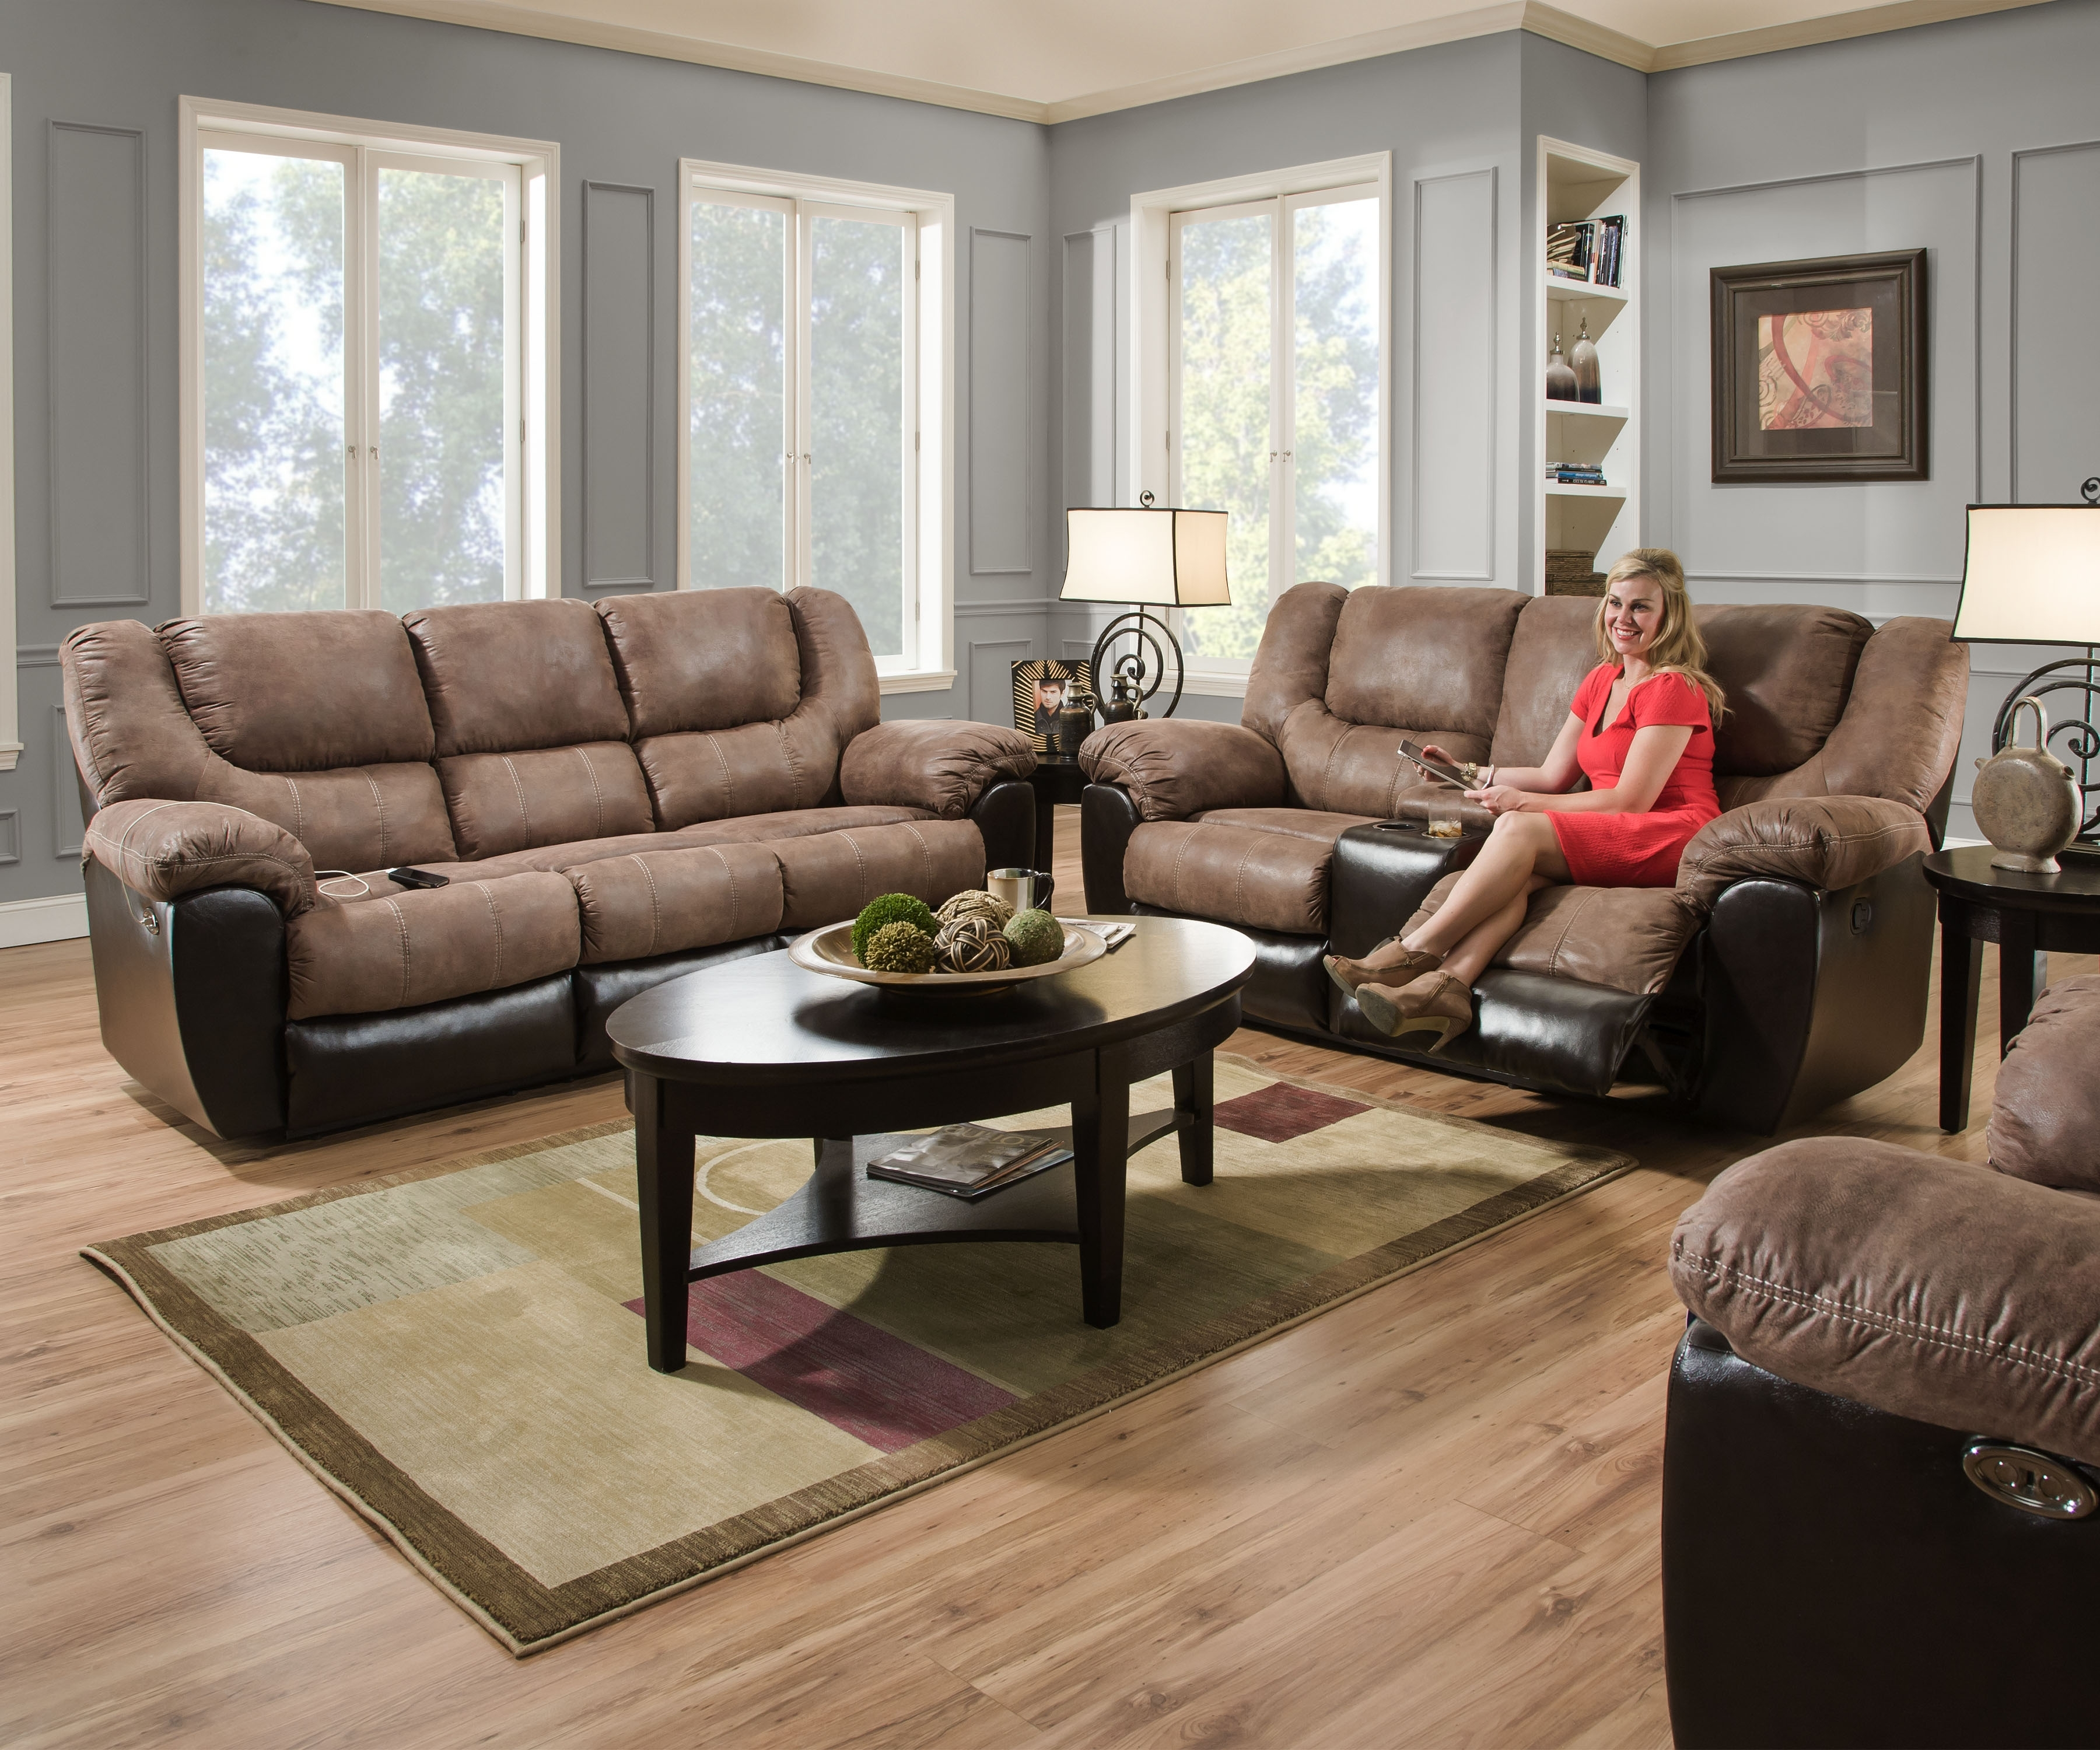 Trendy 50431 – United Furniture Industries Within Sofas And Loveseats (View 14 of 15)